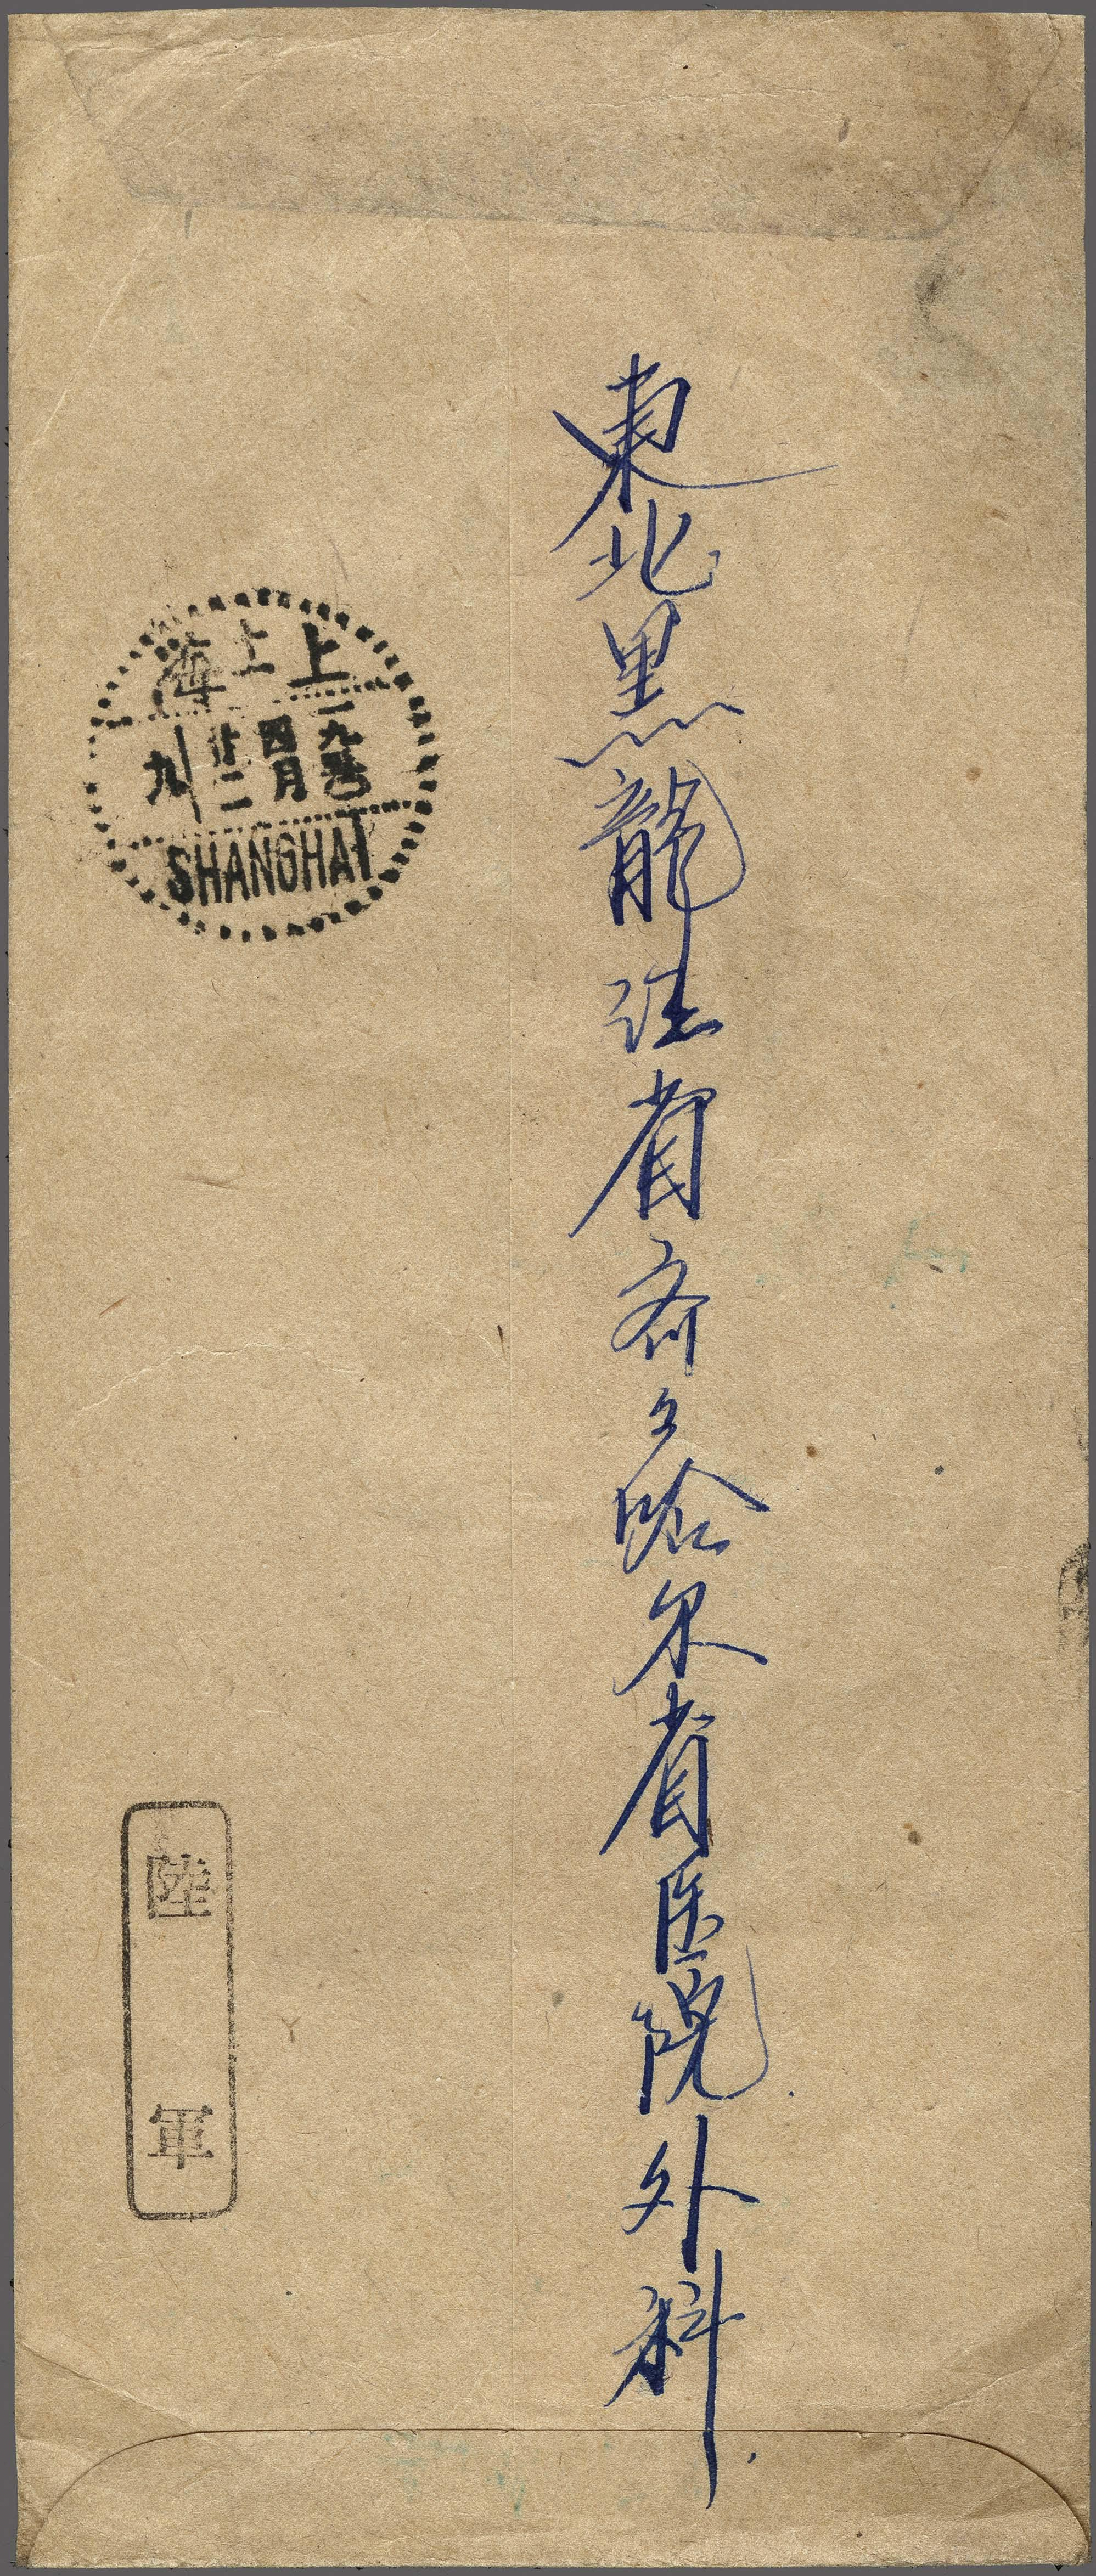 Lot 75 - China China Northeast Provinces -  Corinphila Veilingen Auction 250-253 - Day 1 - Foreign countries